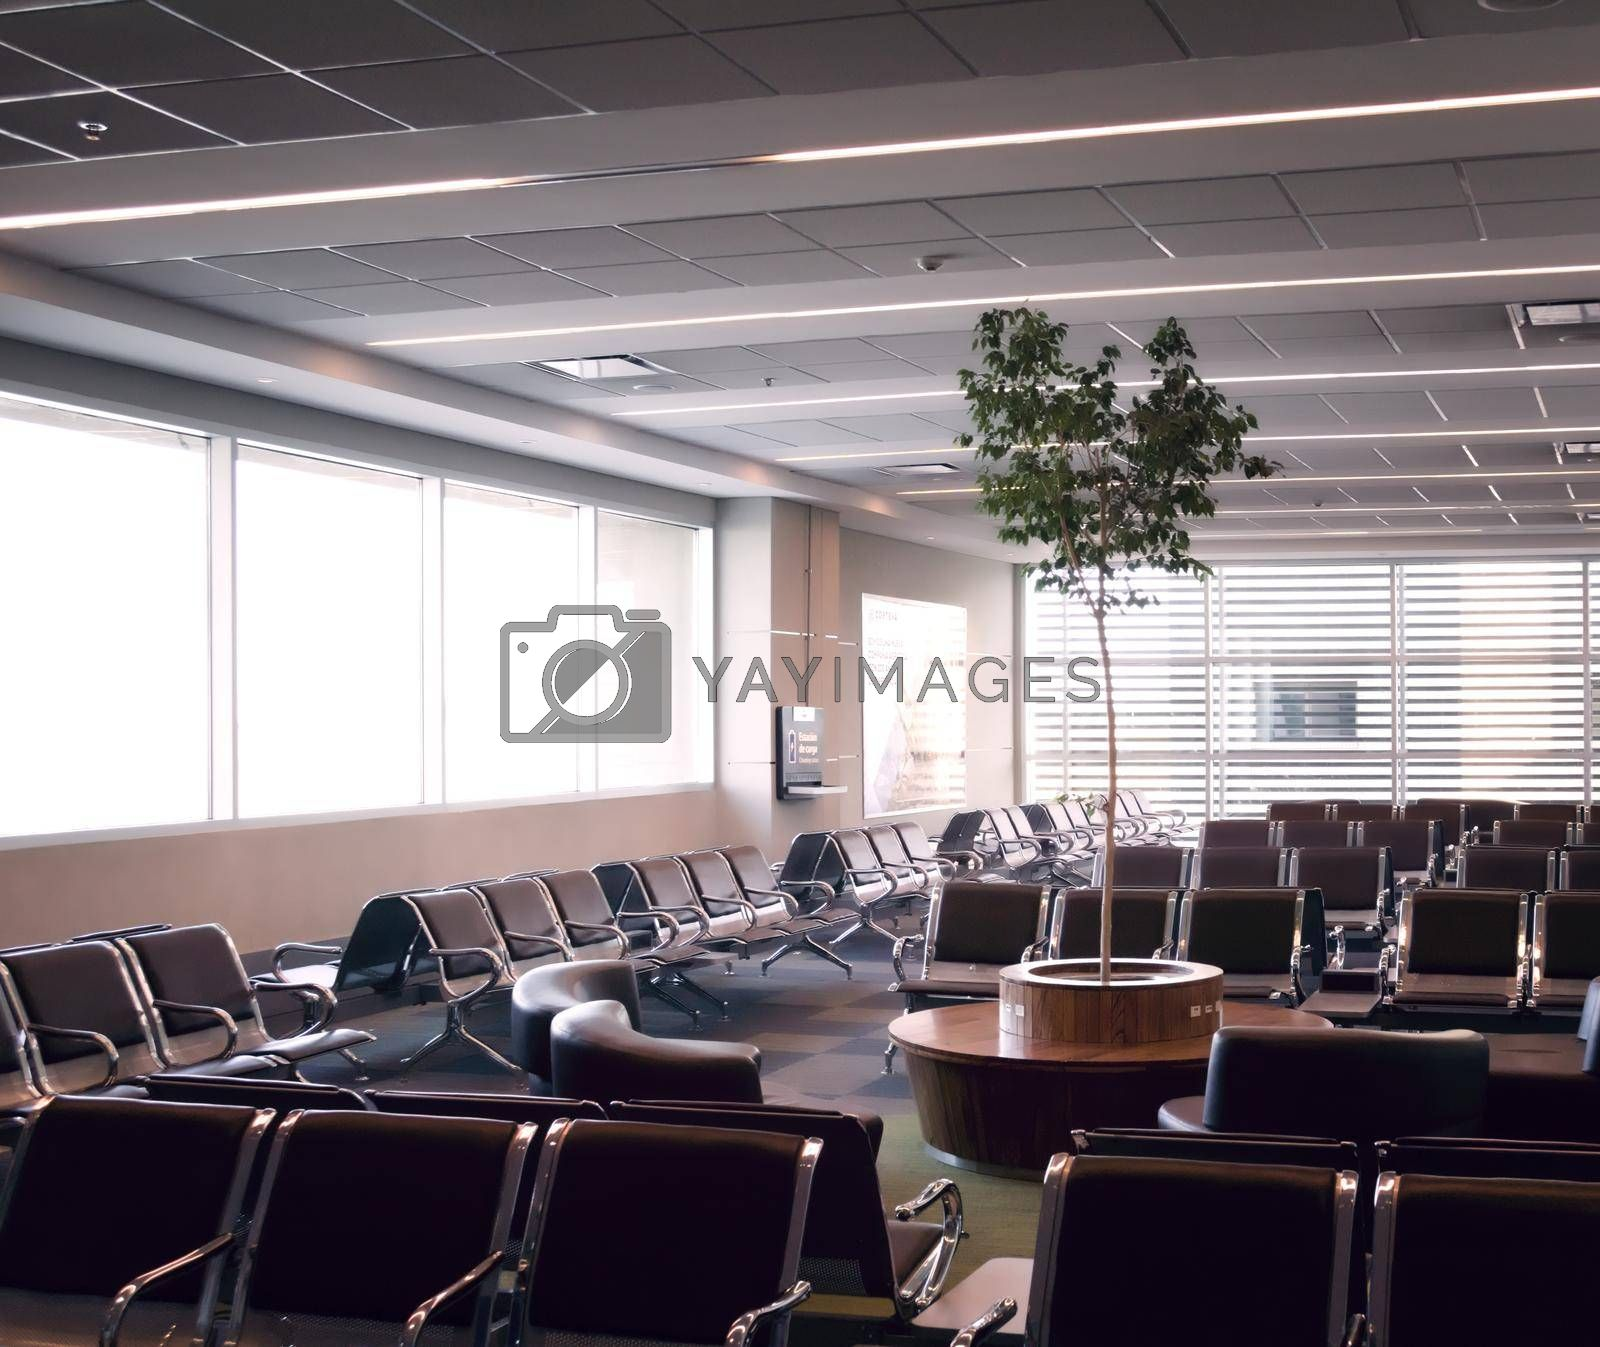 Royalty free image of Empty seats at the waiting area of an airport. by hernan_hyper